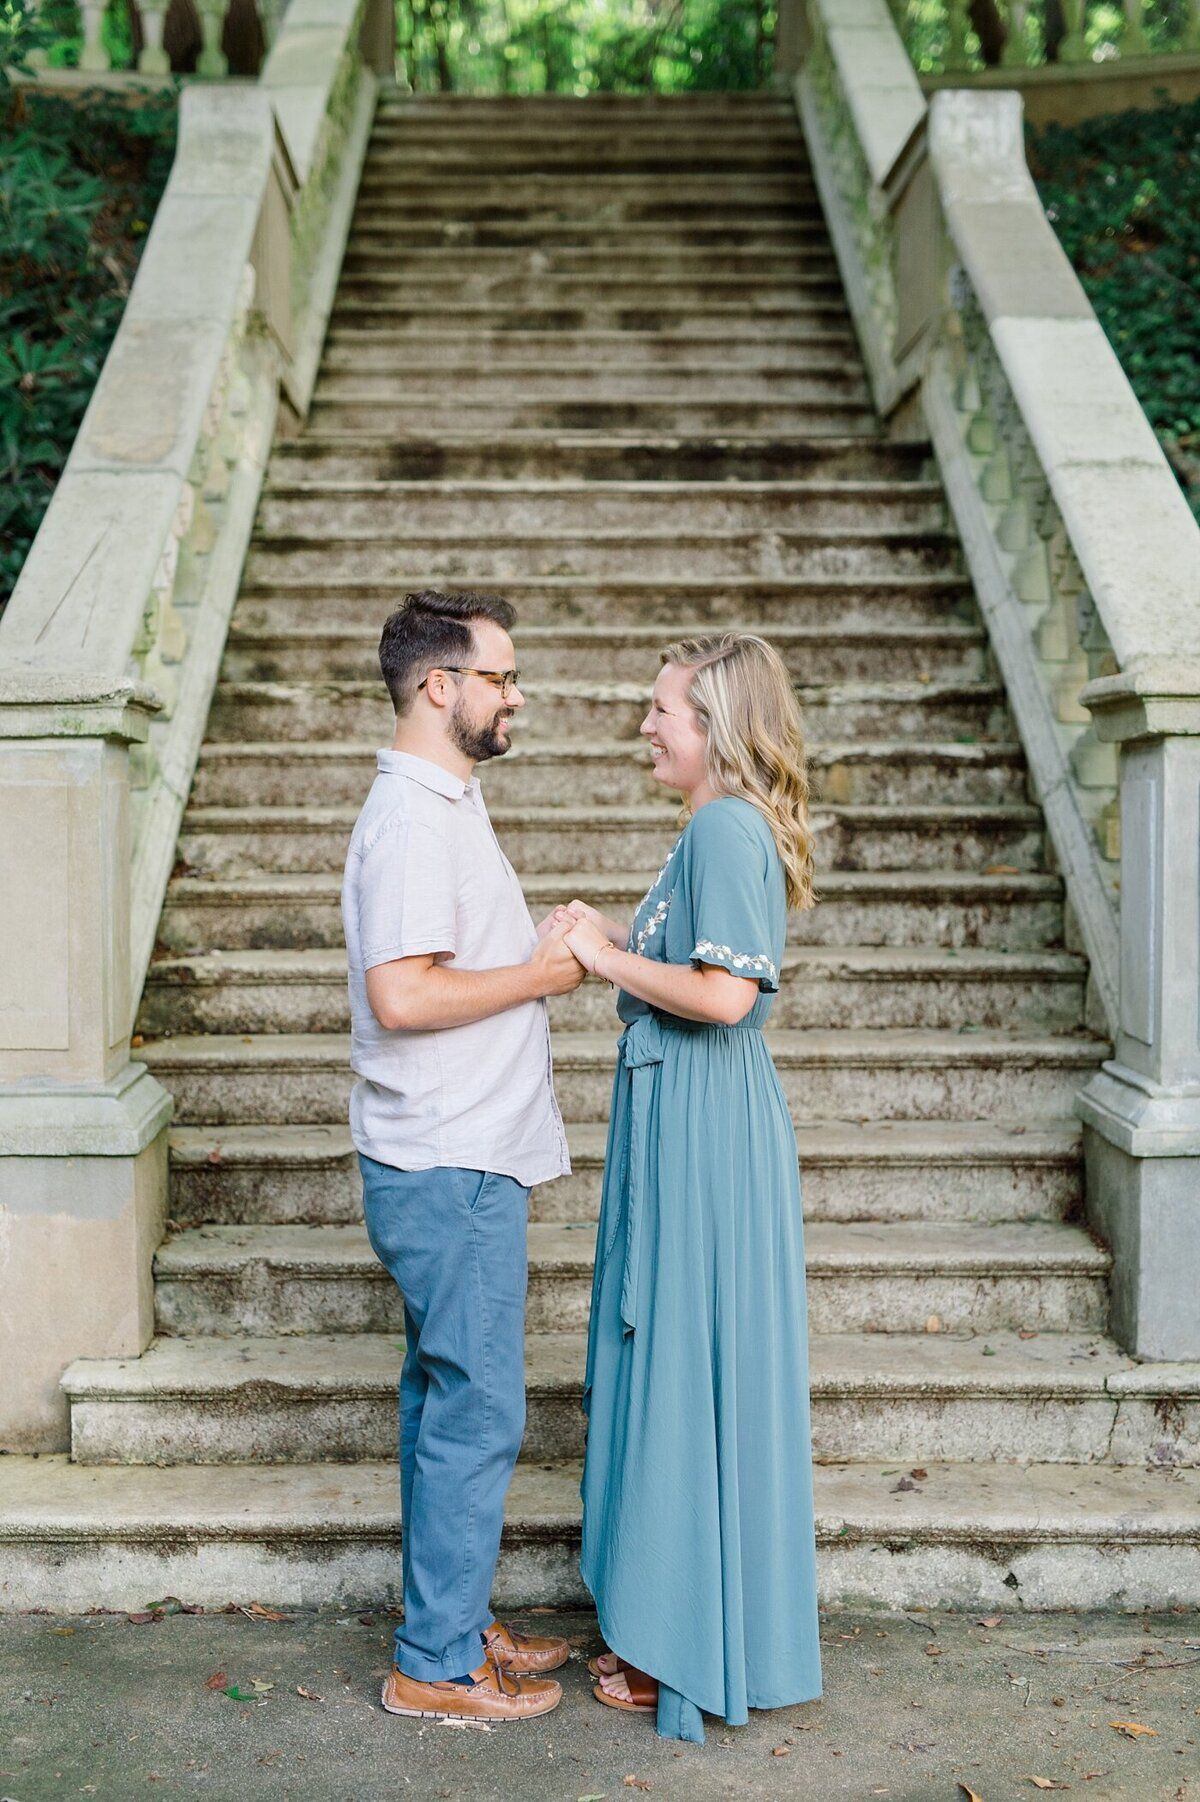 cator-woolford-gardens-engagement-wedding-photographer-laura-barnes-photo-shackelford-01